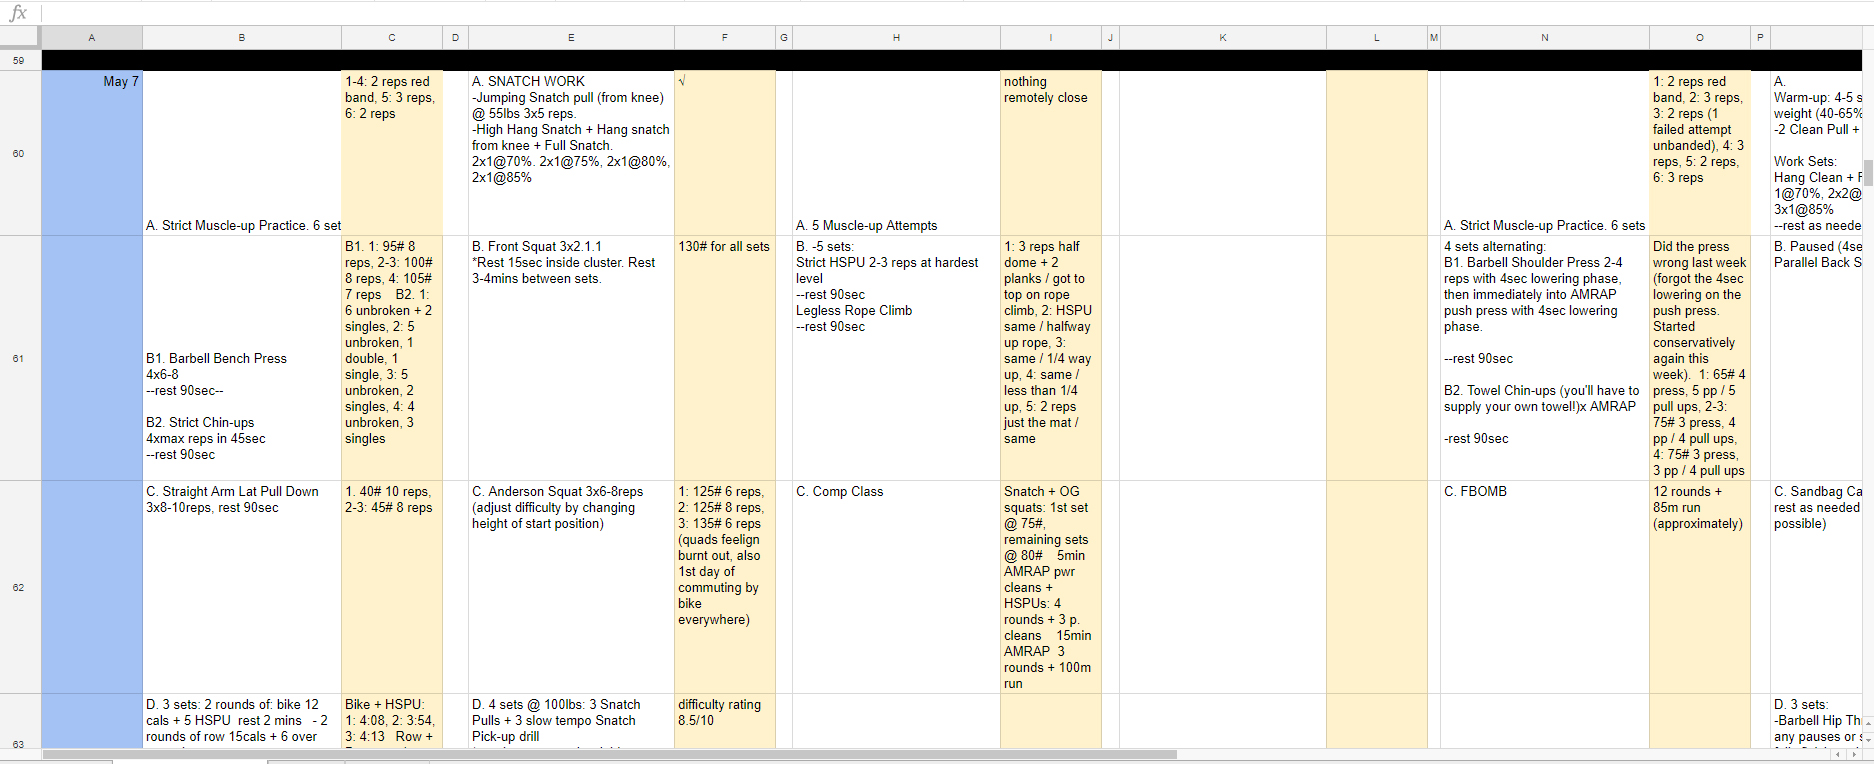 how to write a workout journal google sheets workout log 1.jpg